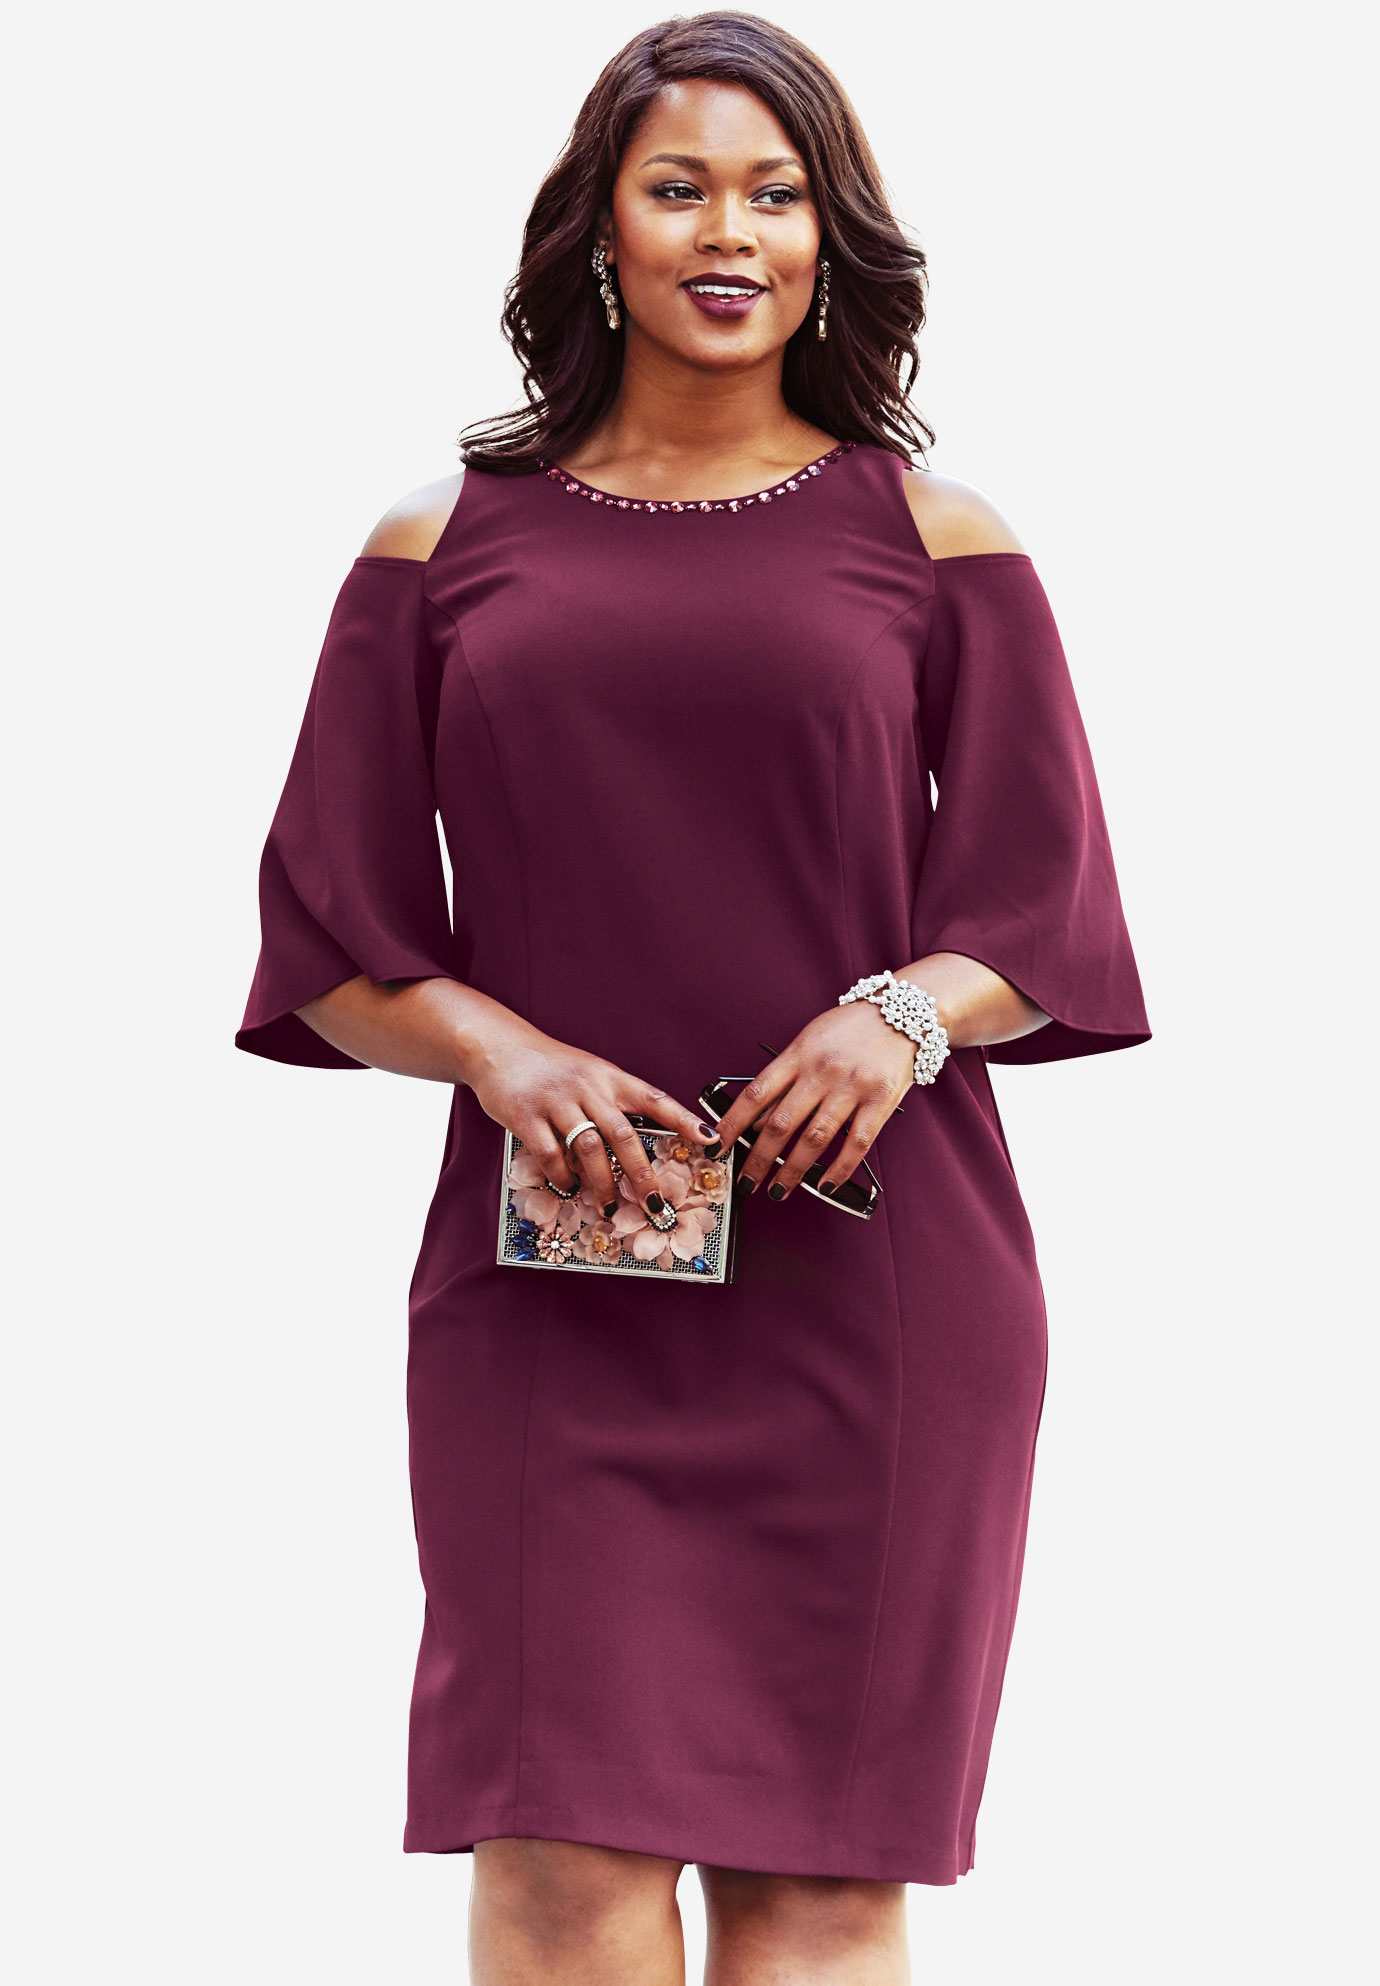 Jewel Embellished Dress, MIDNIGHT BERRY, hi-res